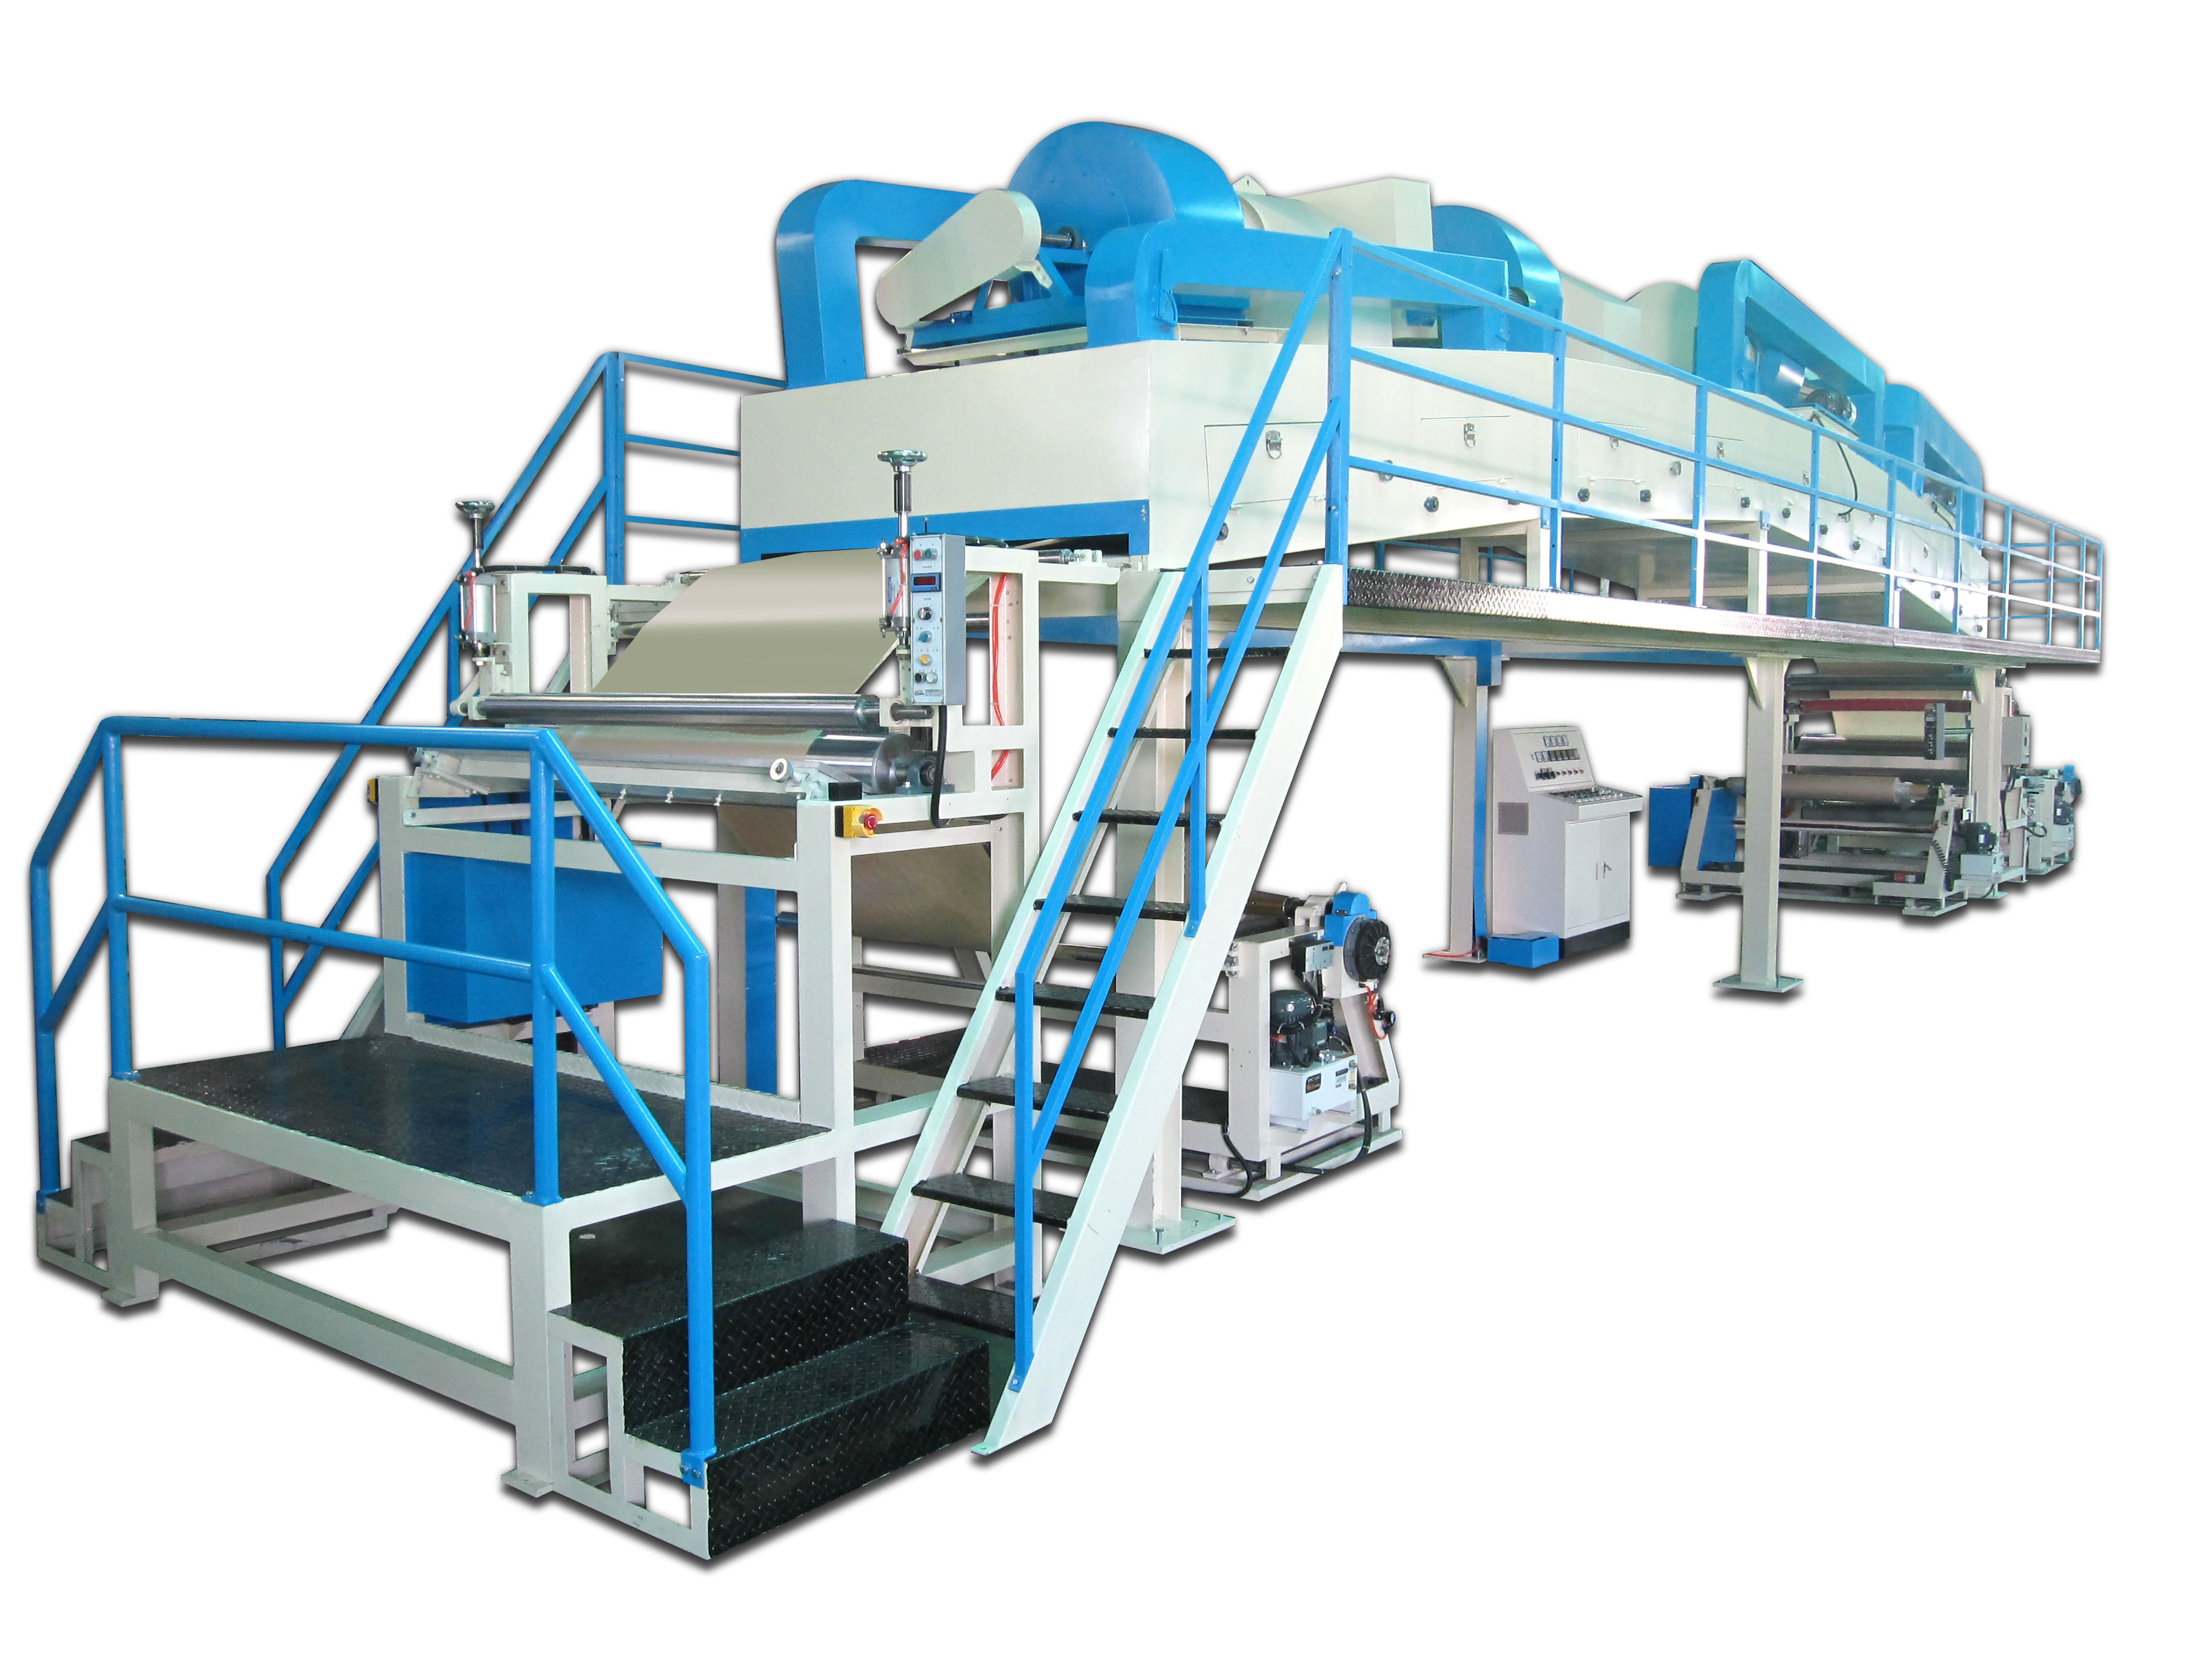 LS-18 Self-Adhesive&Coating Laminating Machine